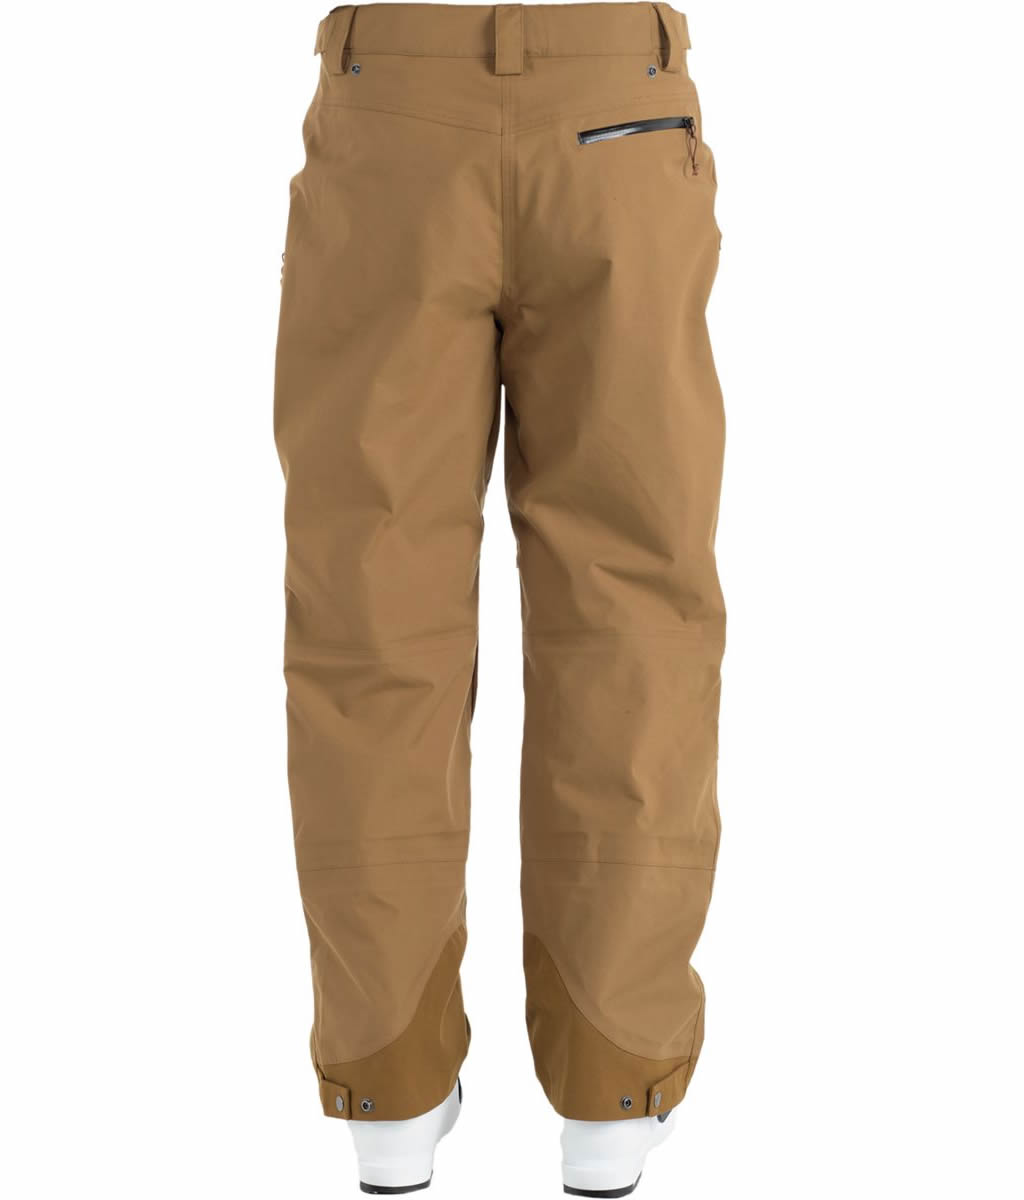 Sepia FlyLow Gear Chemical Pant, Back